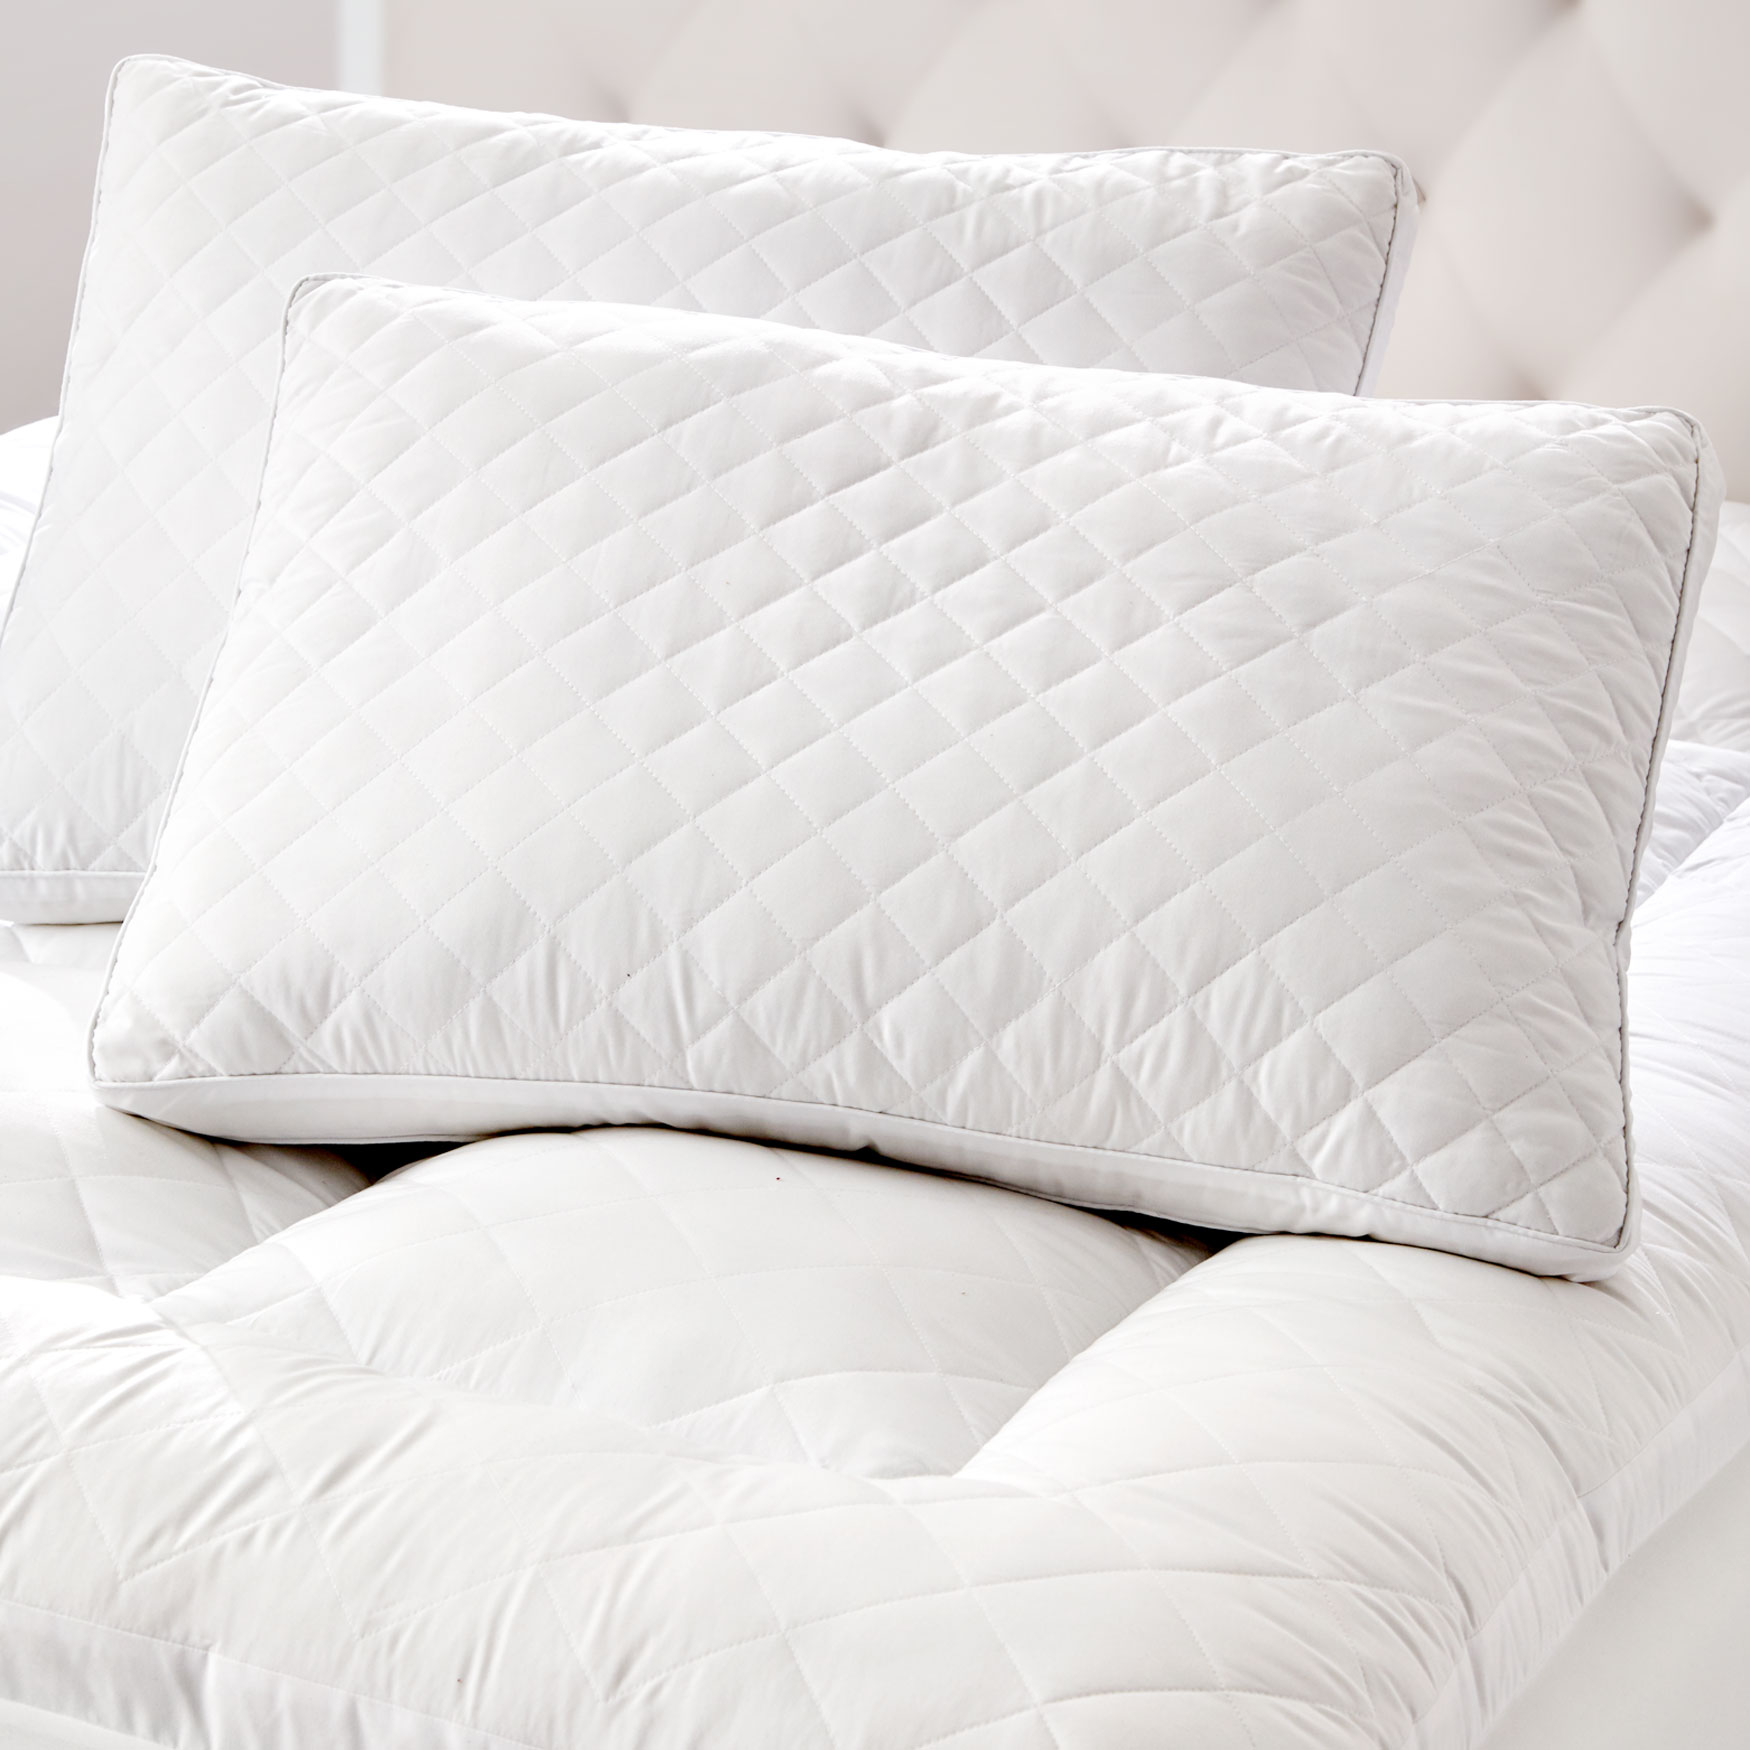 Small Diamond Quilted Pillow, WHITE